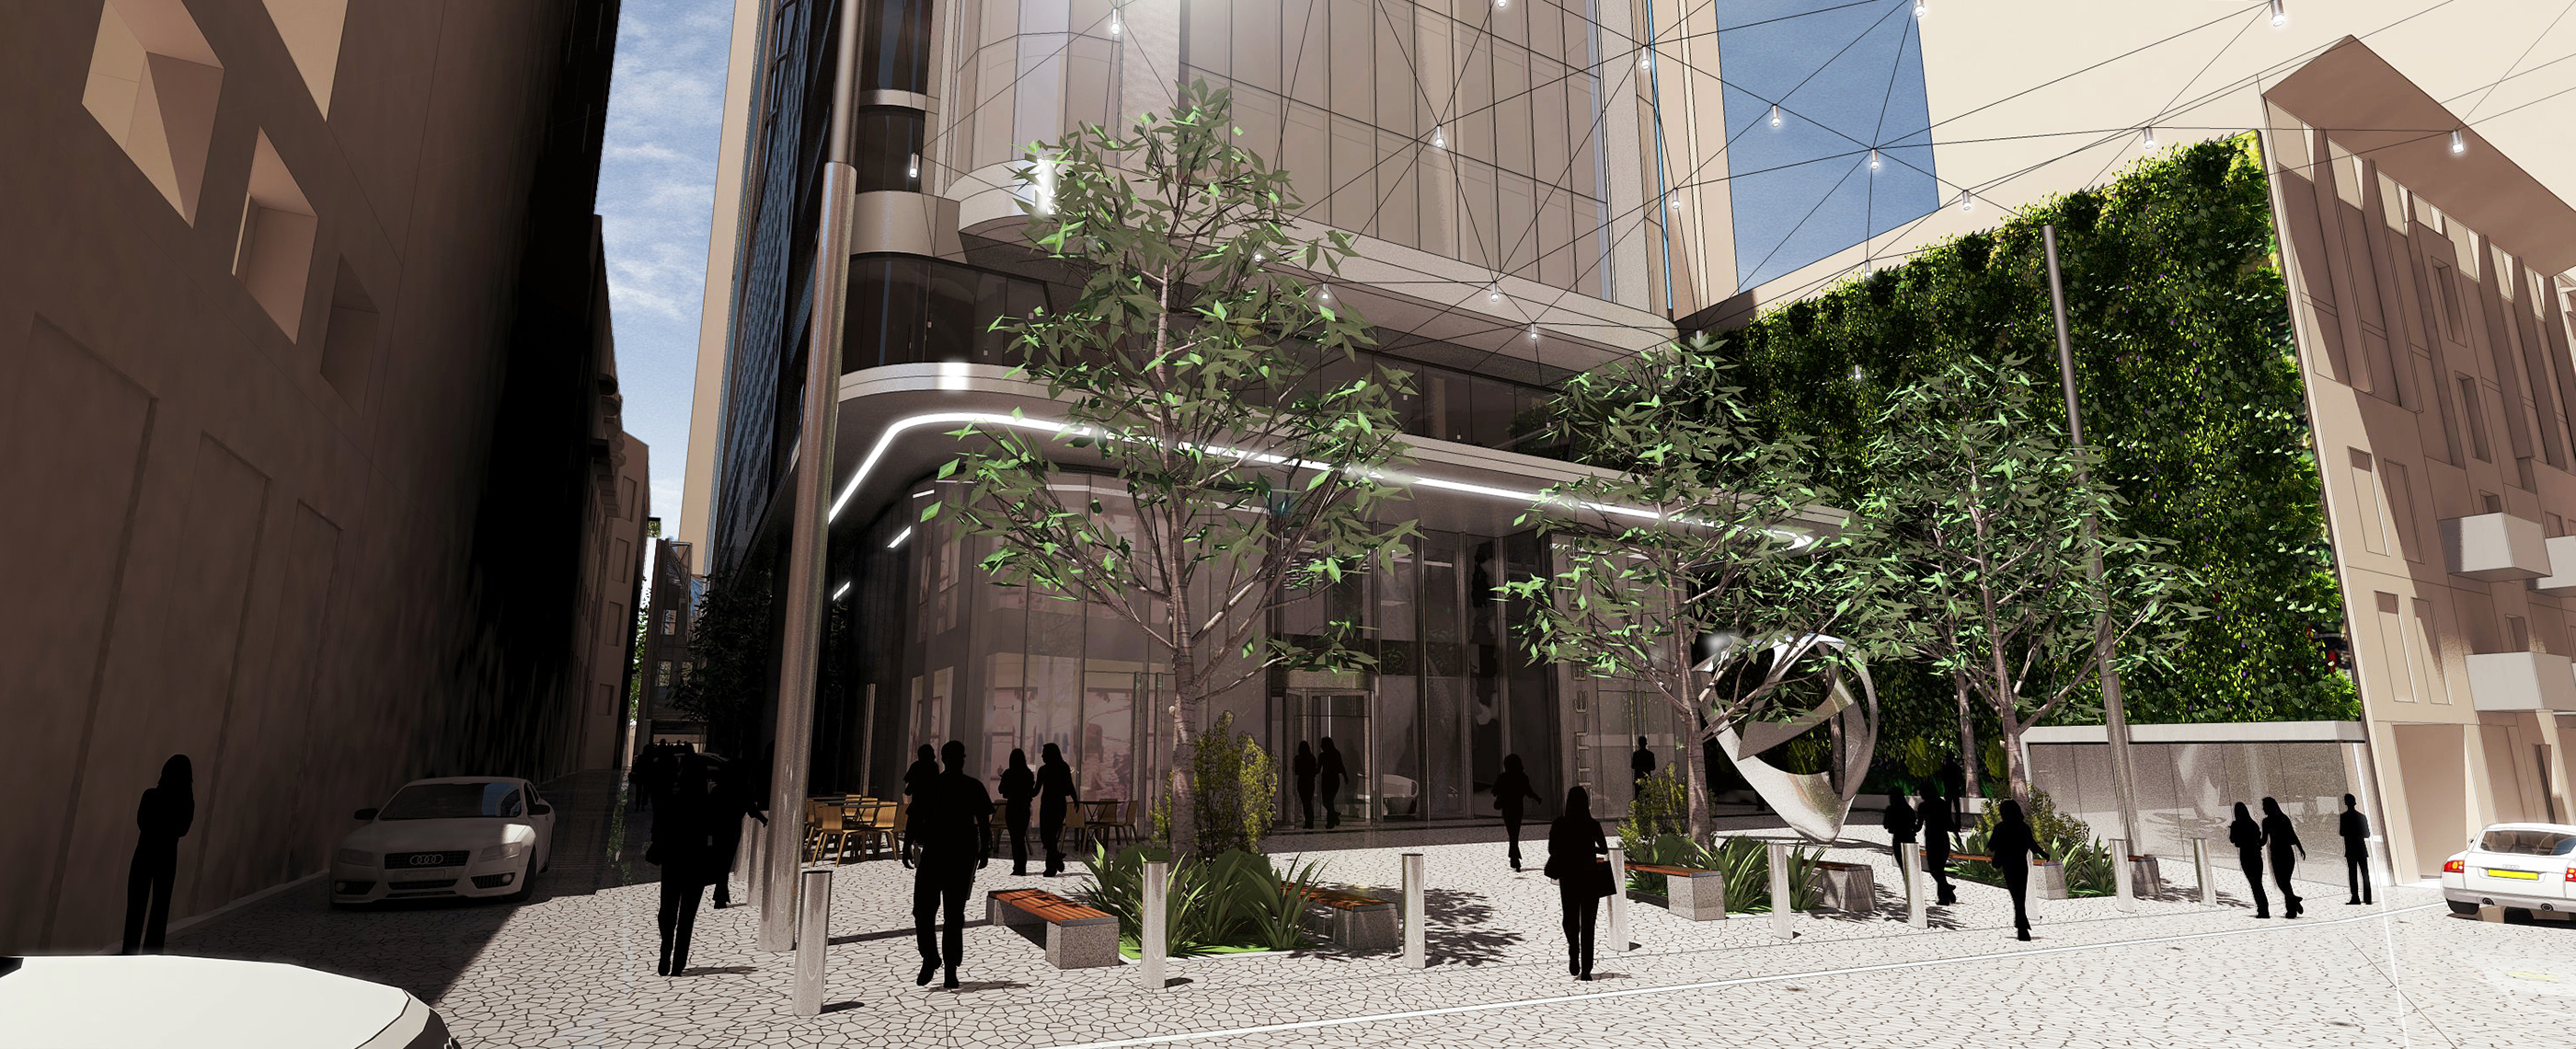 640 Bourke Rothelowman Architecture project